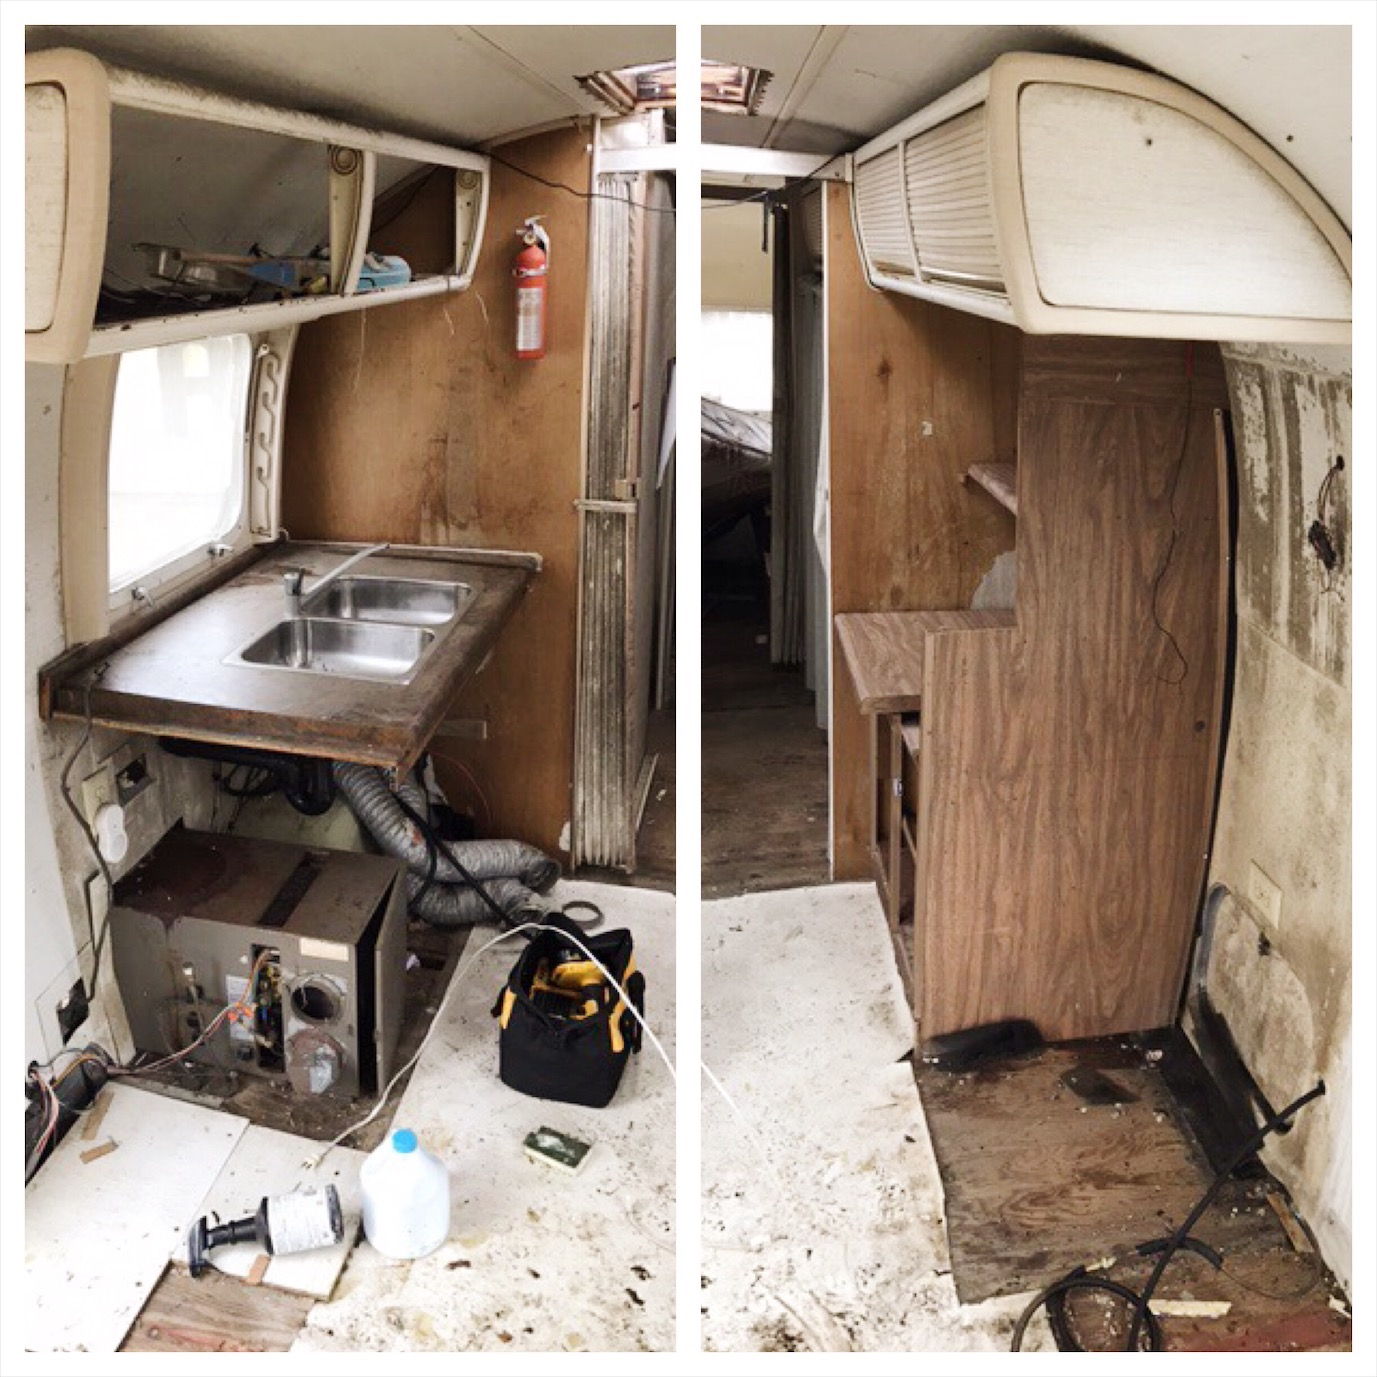 Before the demolition - this is what Cilla looked like inside. January 2017.